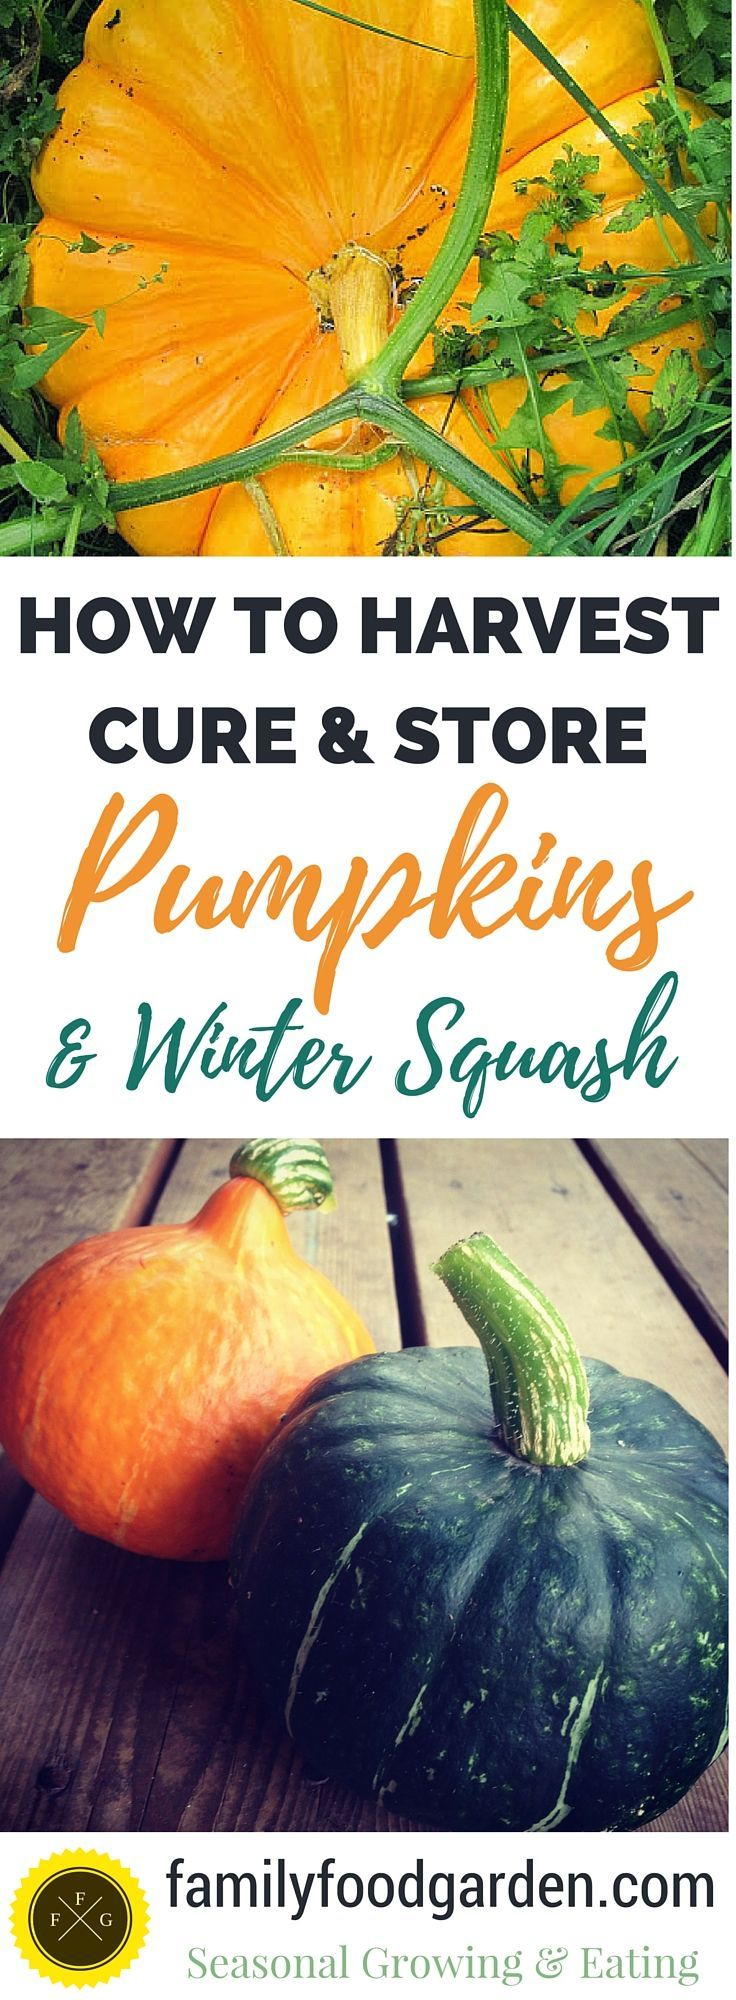 How to harvest, cure & store winter squash and pumpkins.